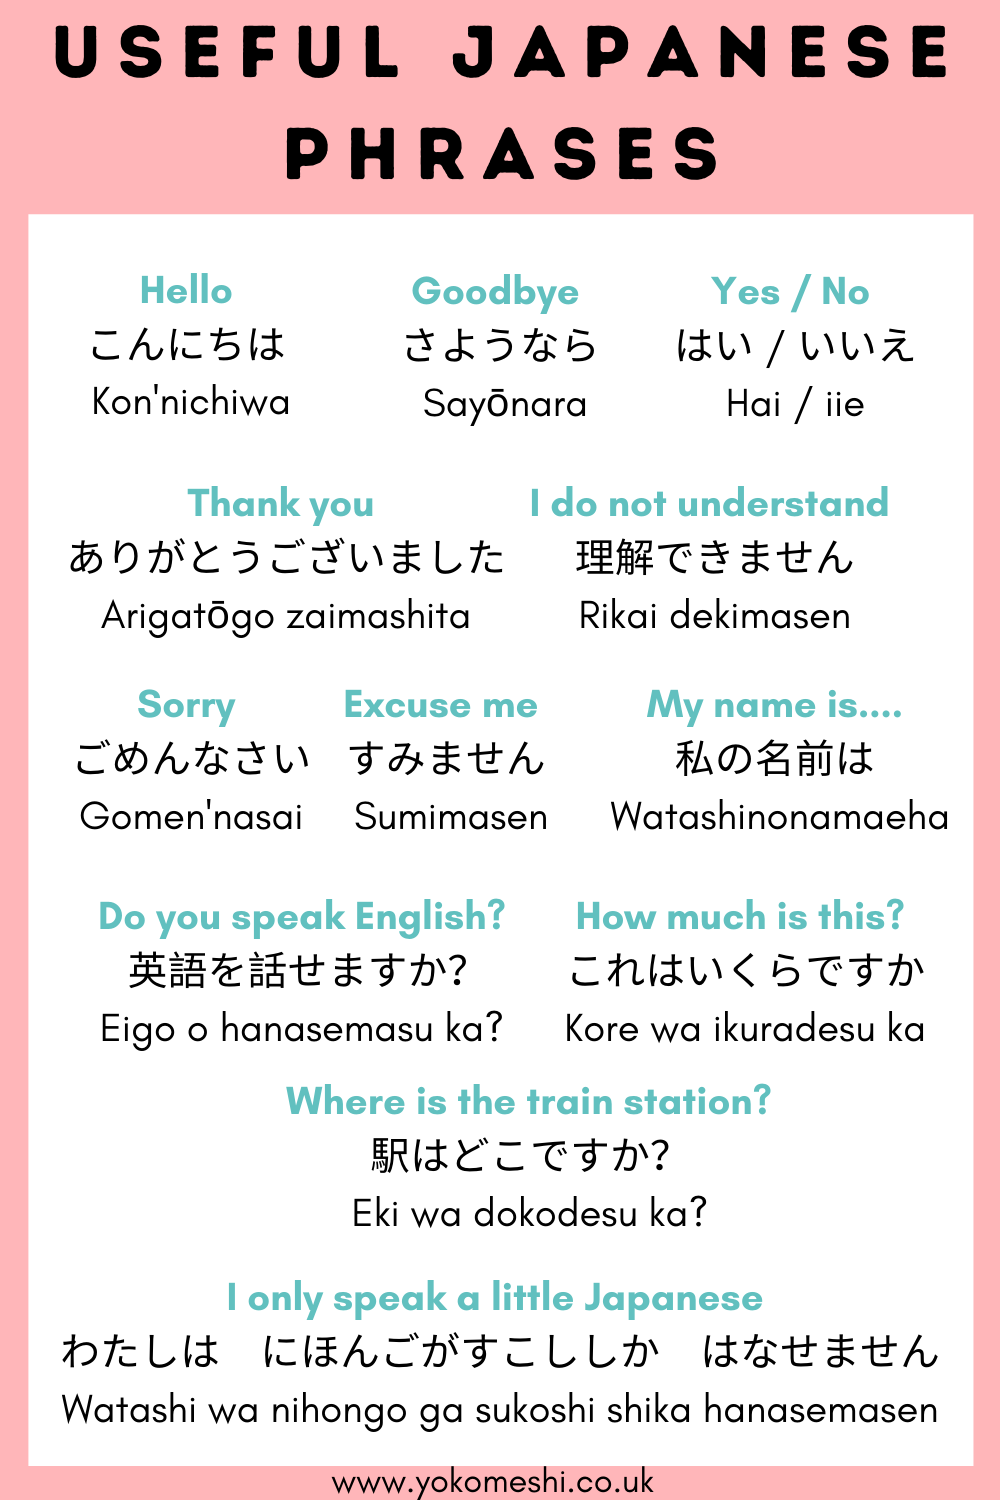 Useful Japanese Phrases